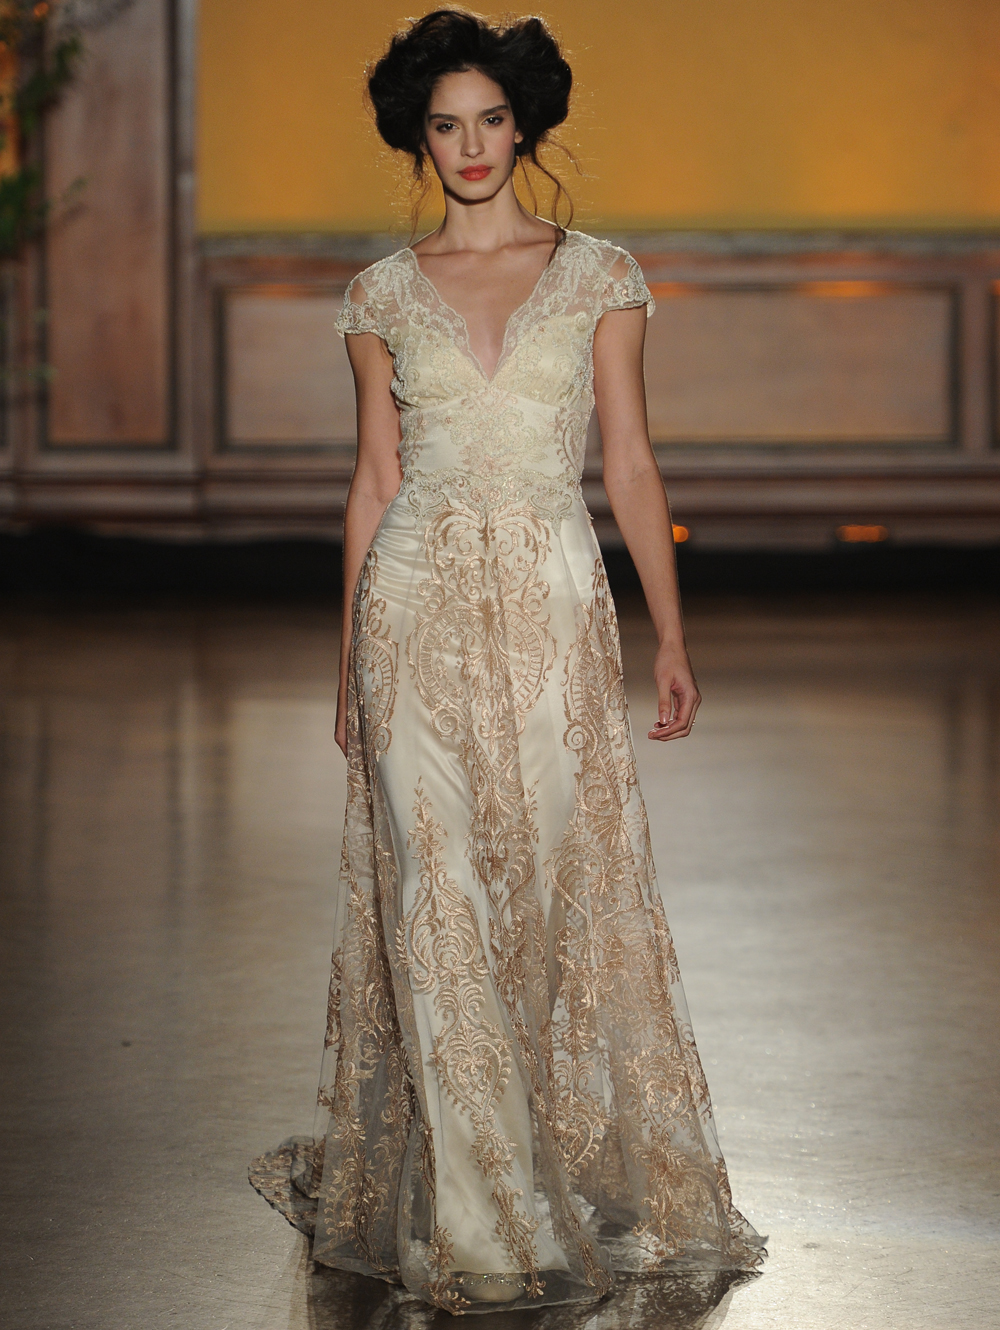 Claire pettibone 39 s fall 2016 wedding dresses take us back for Wedding dress claire pettibone